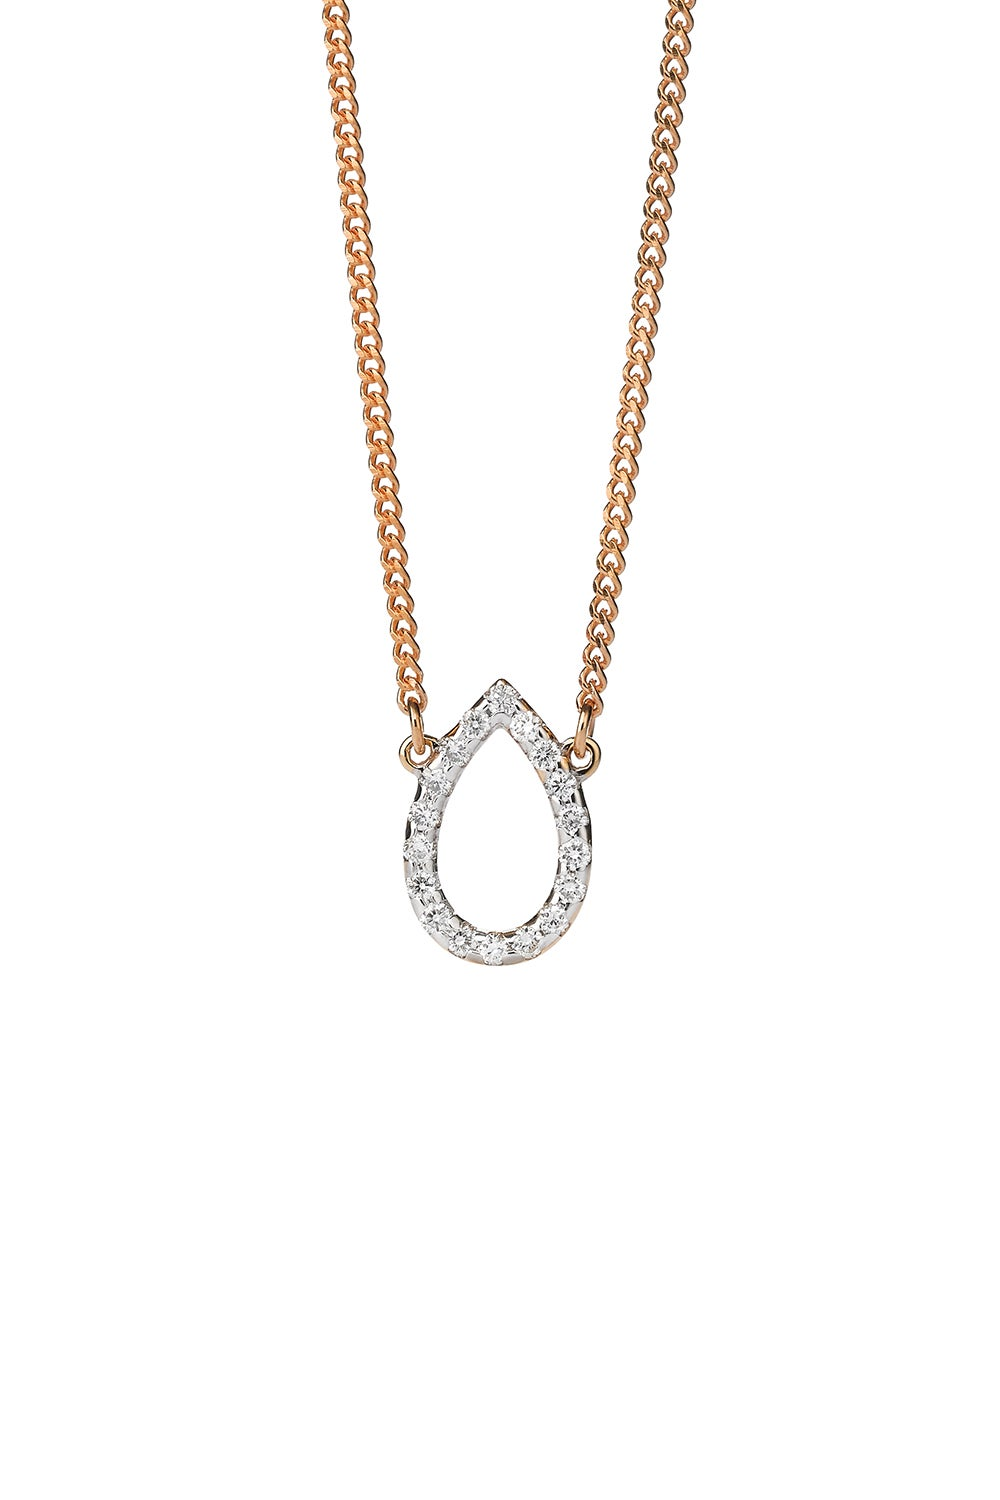 Capsule Diamond Necklace, 9ct Gold, .12ct Diamond